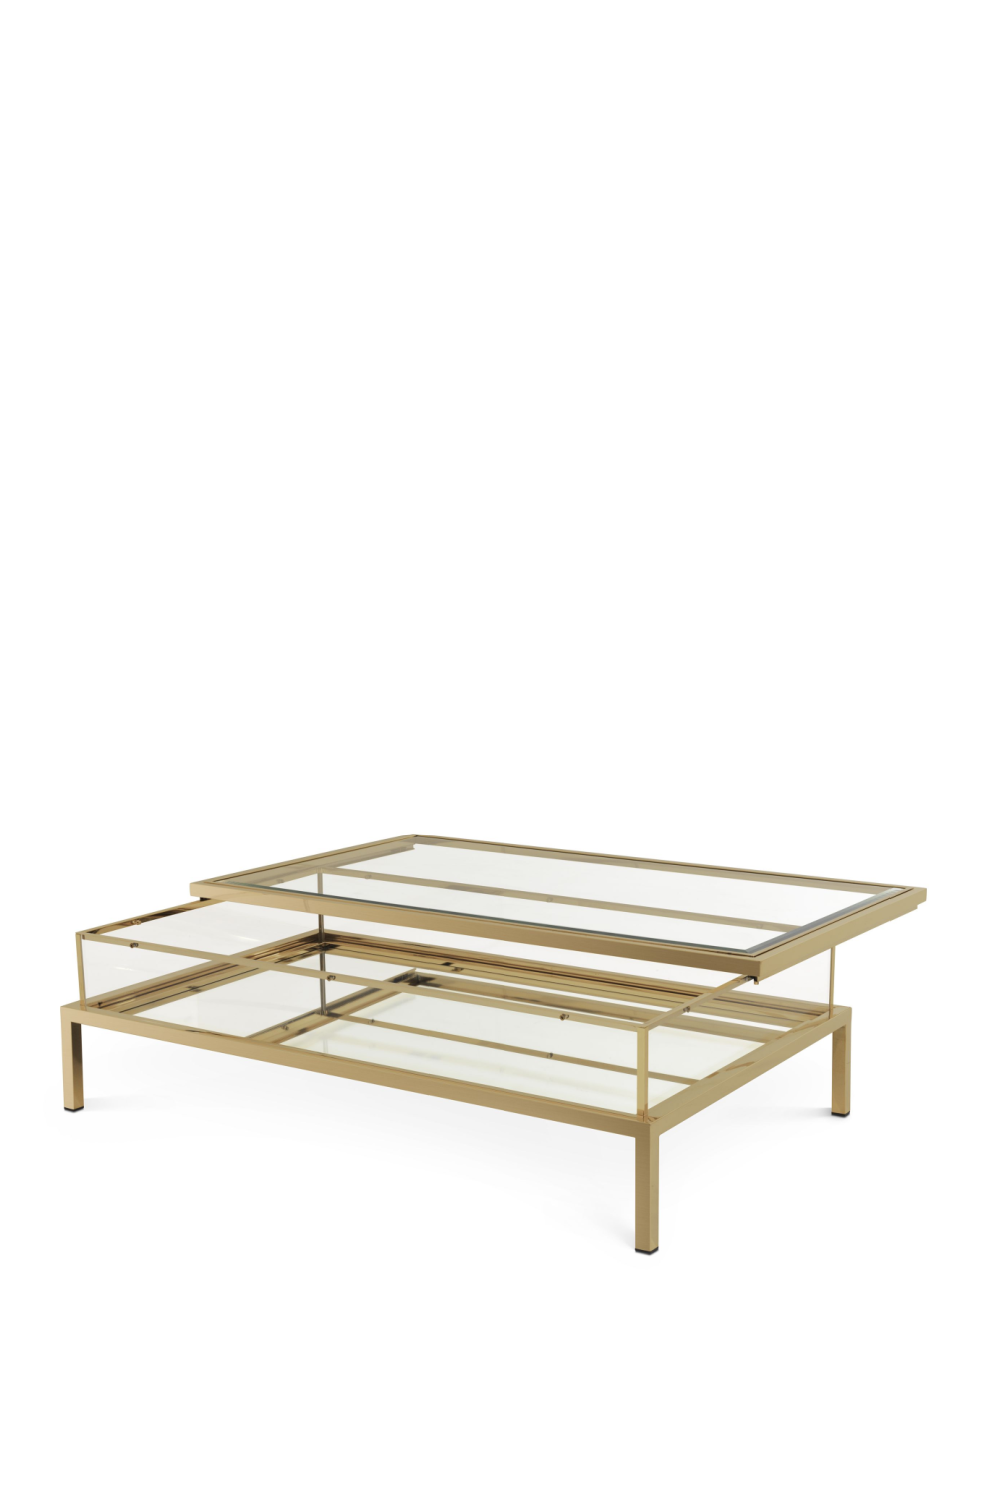 Brushed Brass Sliding-Top Coffee Table | Eichholtz Harvey | OROA